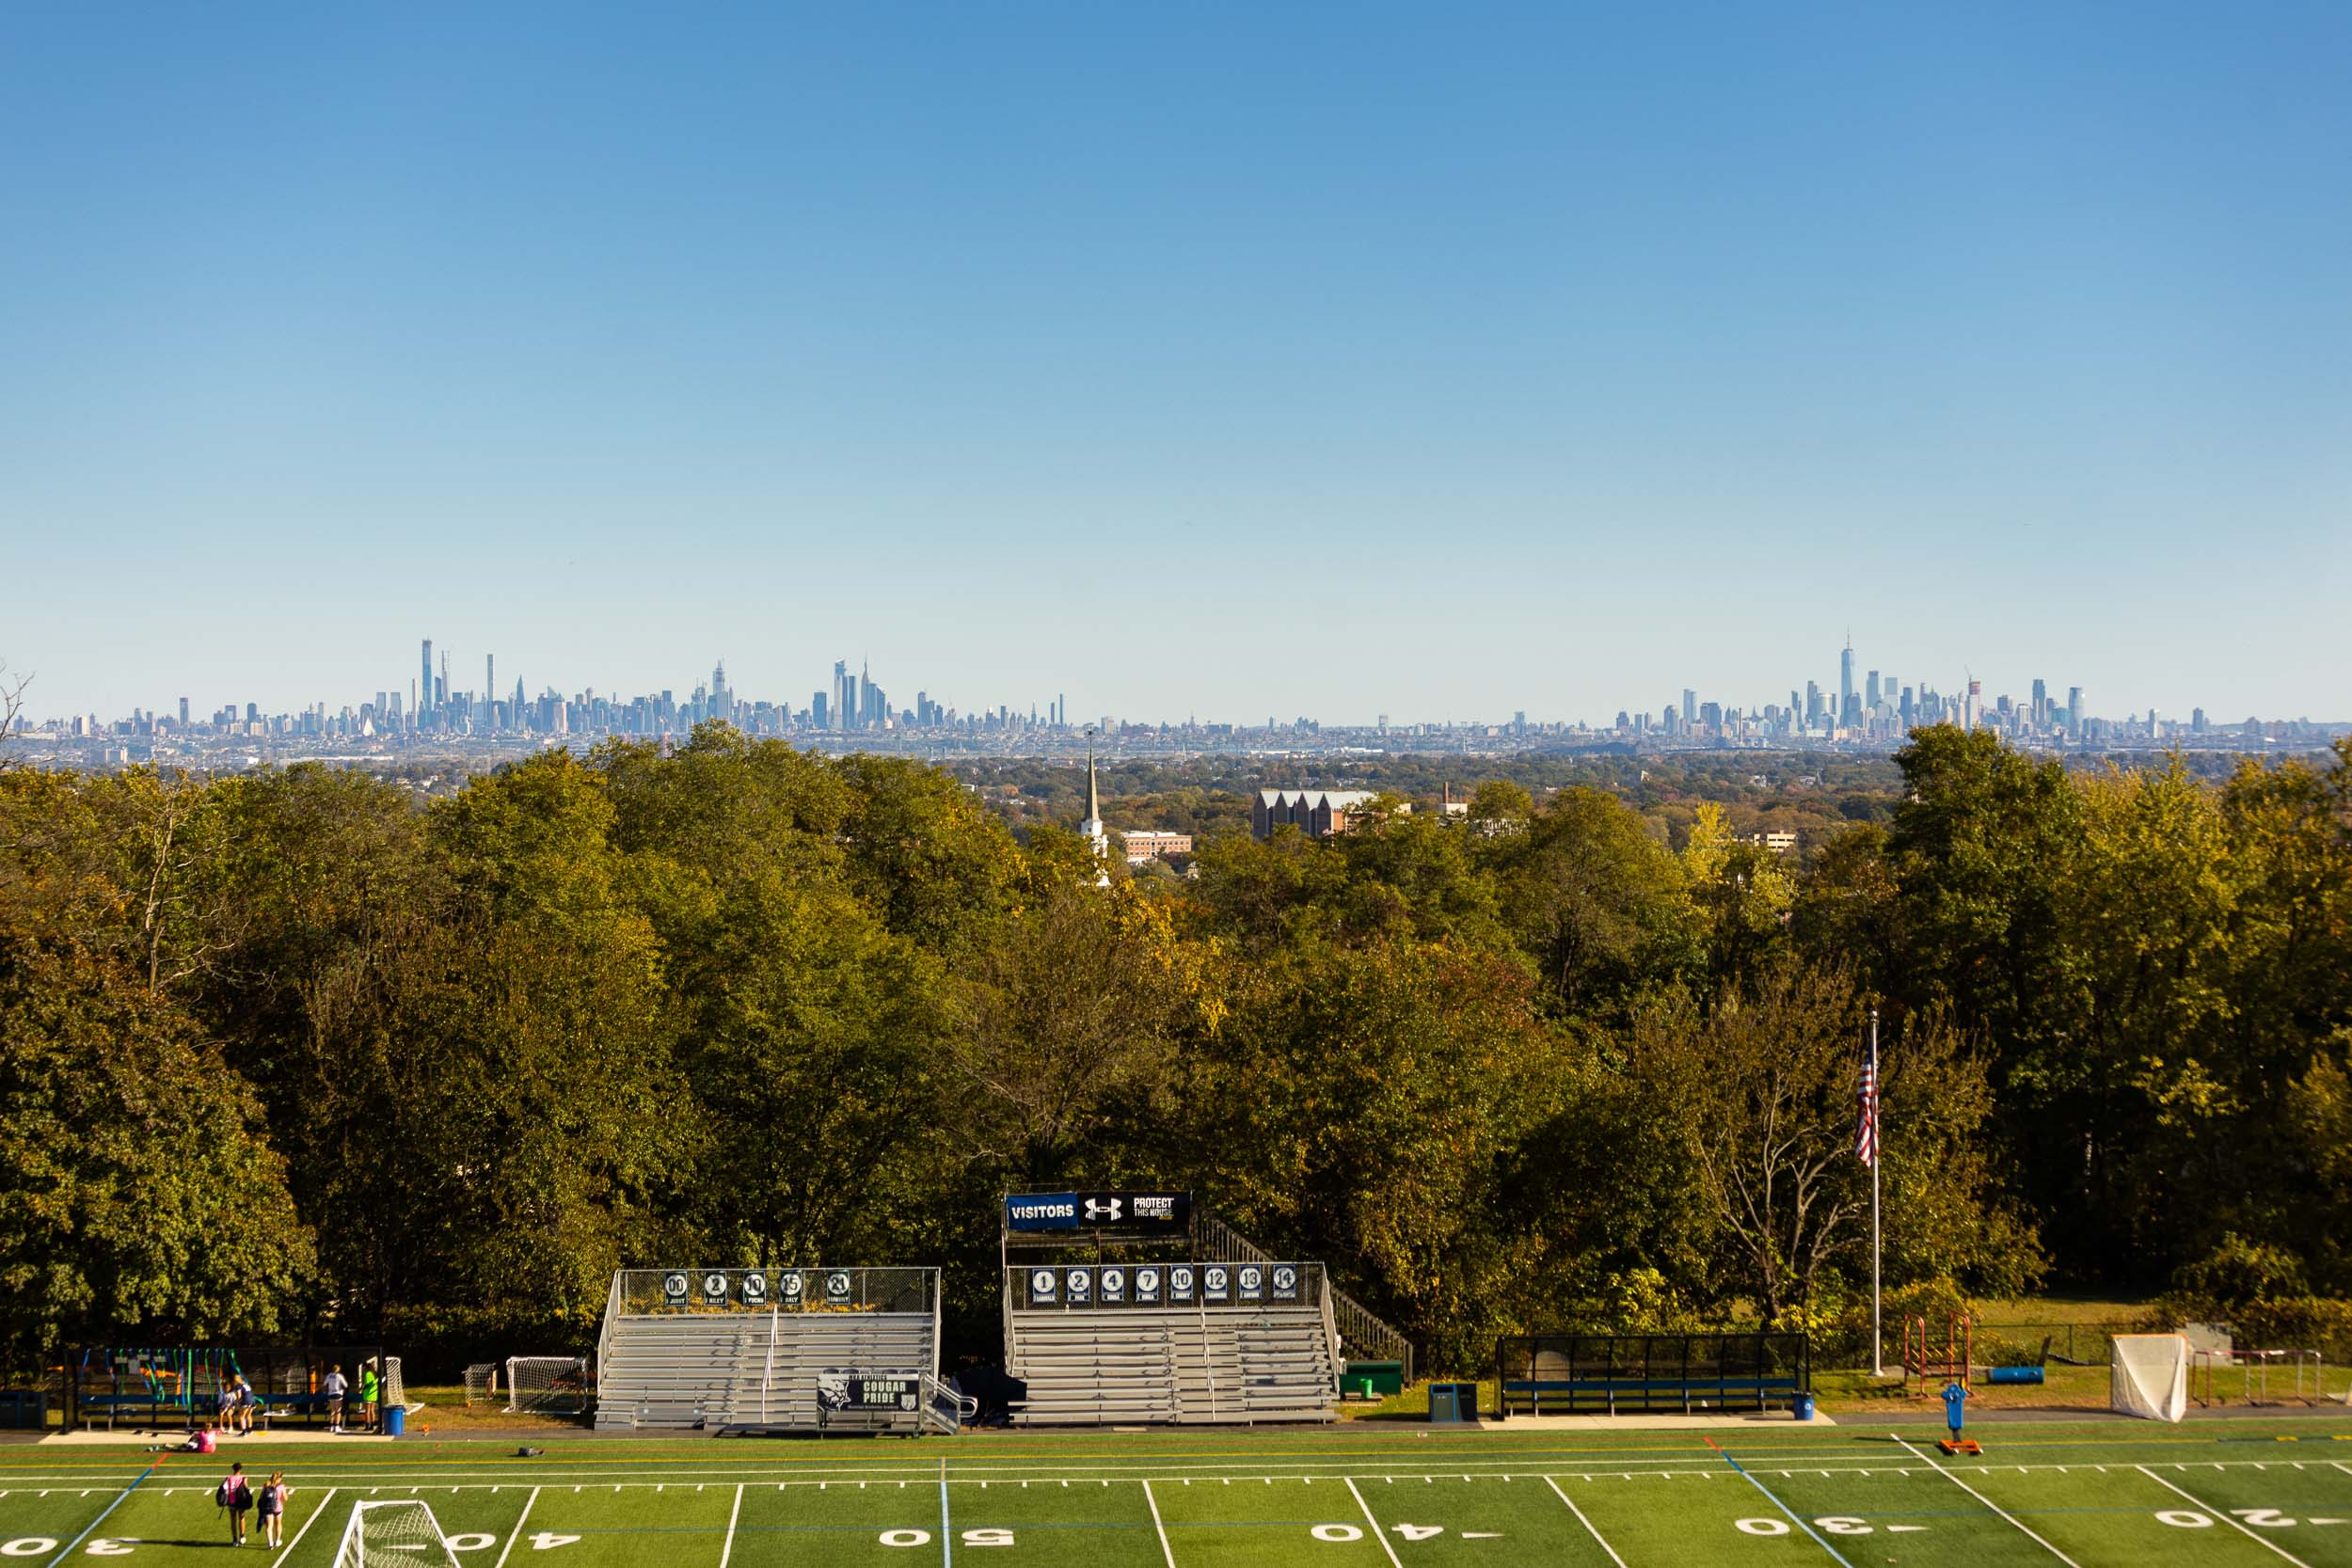 Montclair Kimberly Academy New York skyline field Michael Branscom Photography.